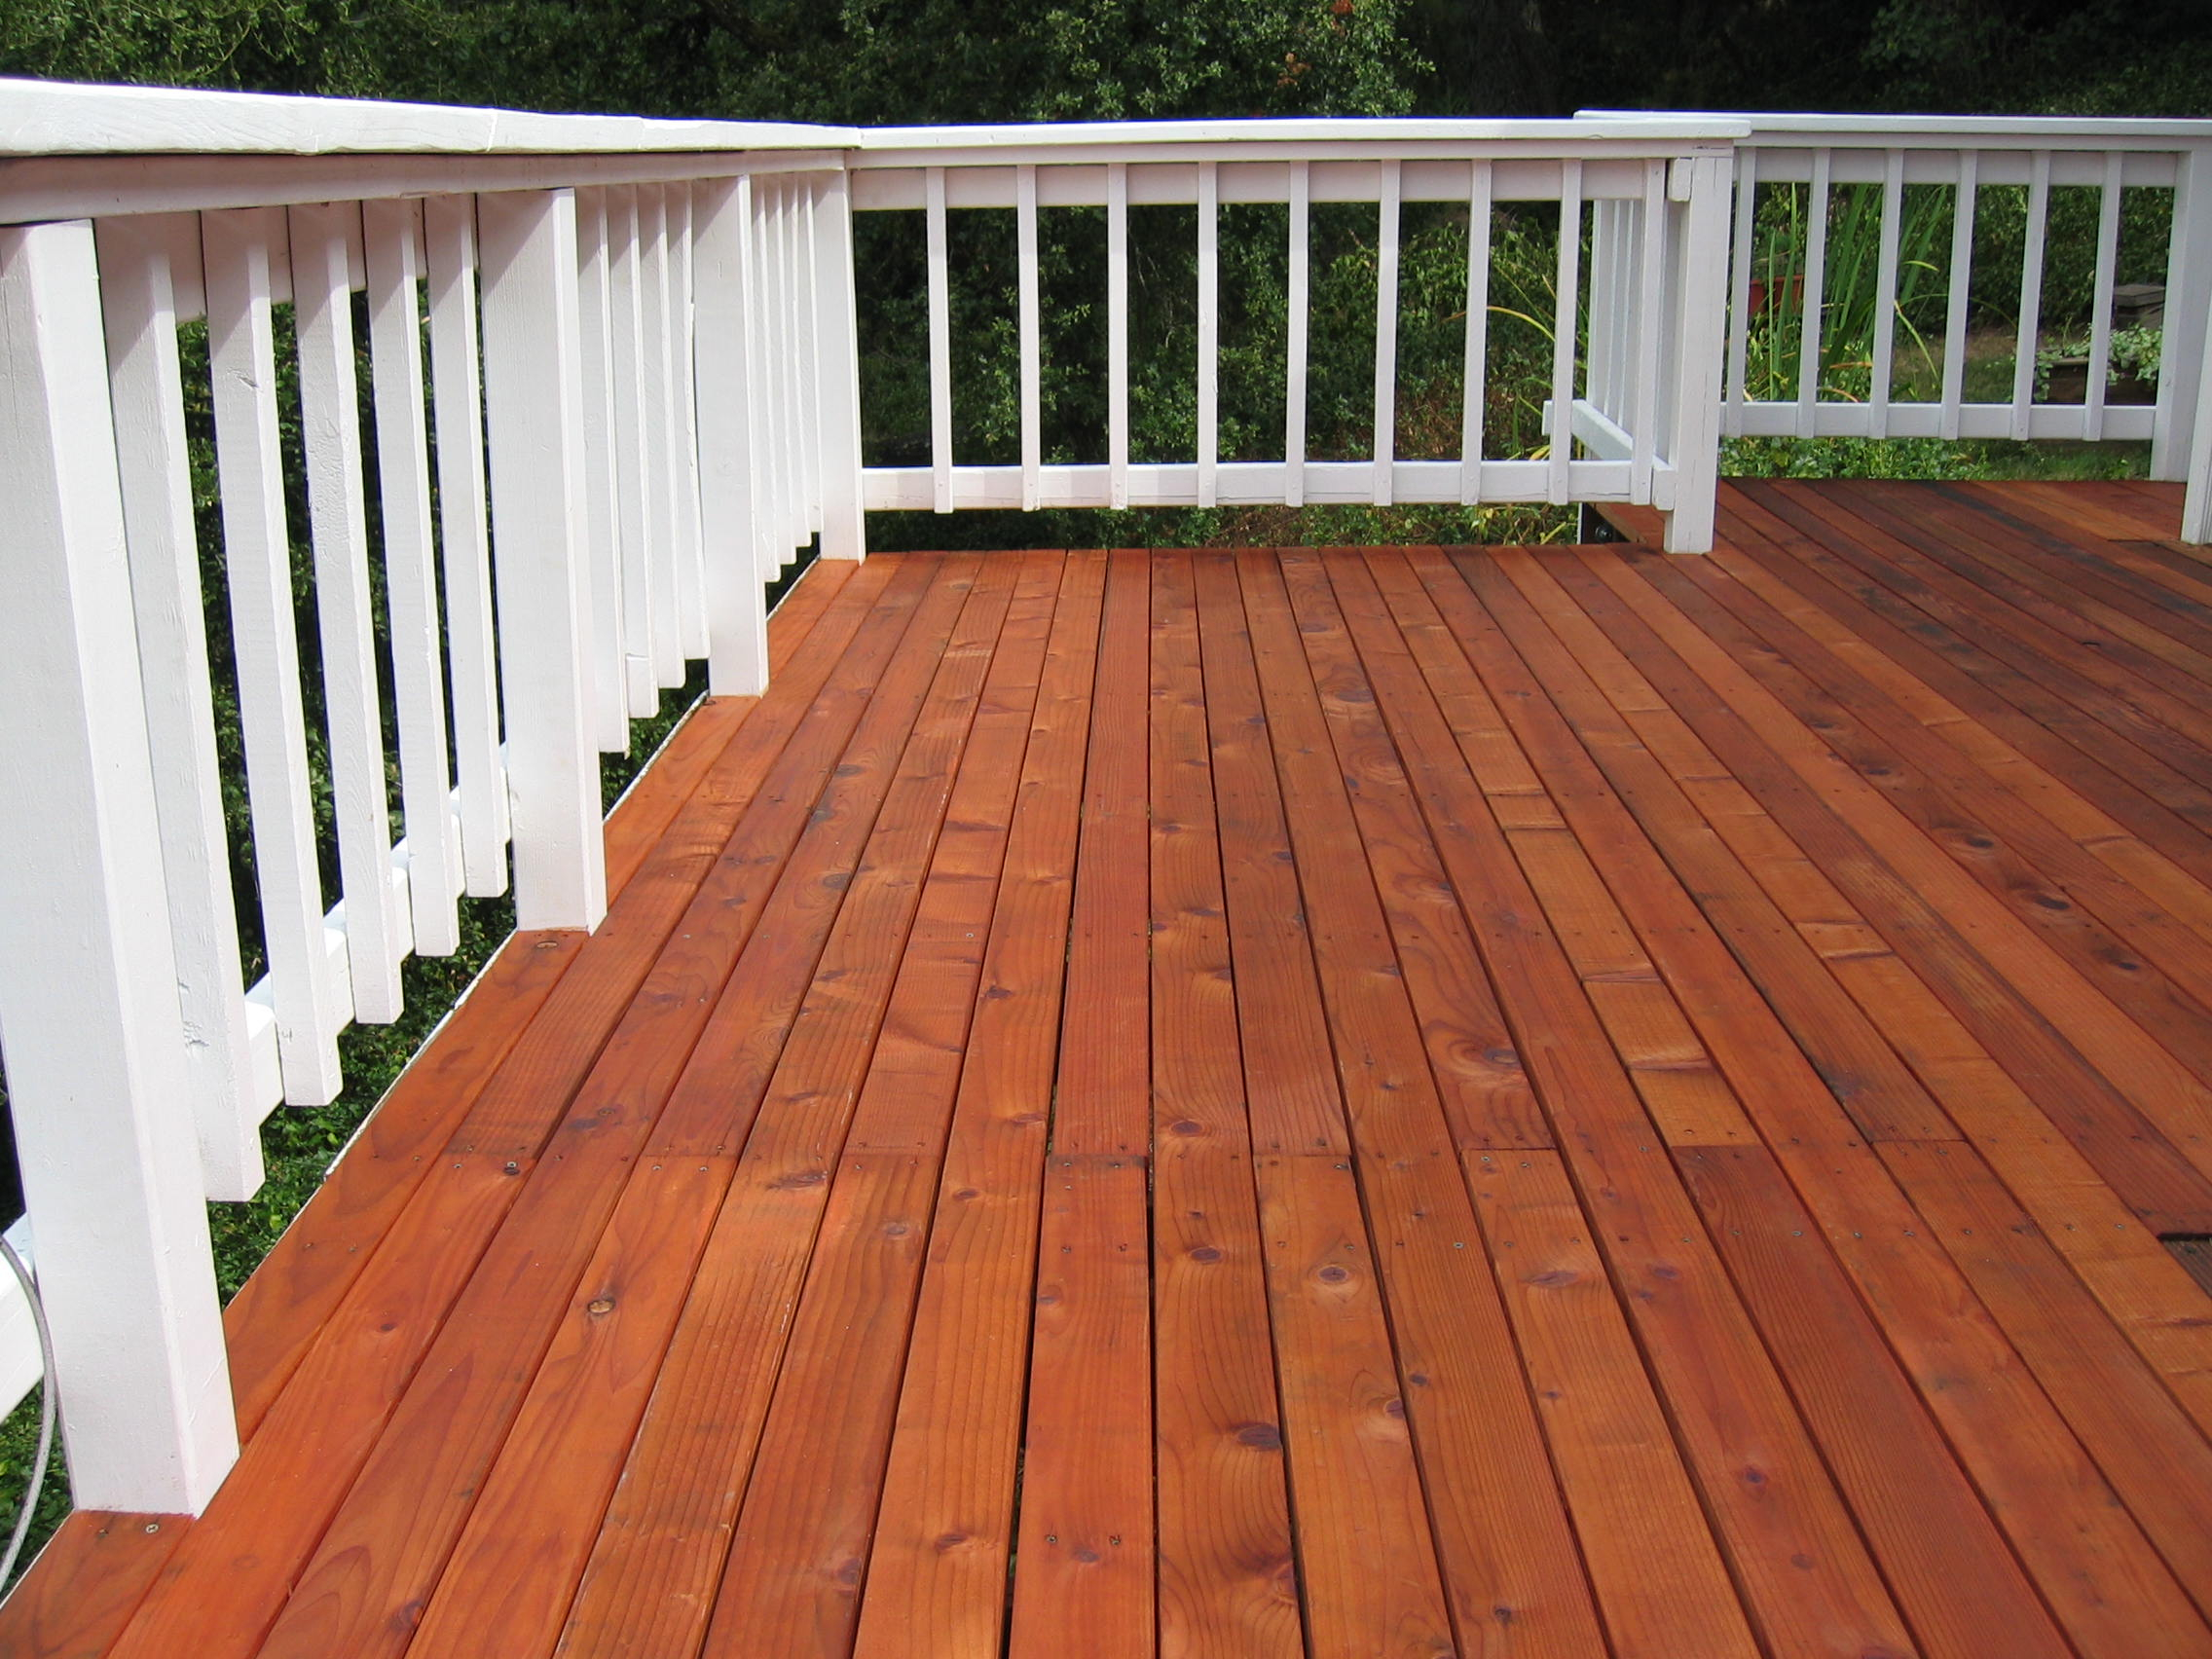 4 Important Steps To Stain A Deck That Is Made With New Boards in sizing 2272 X 1704